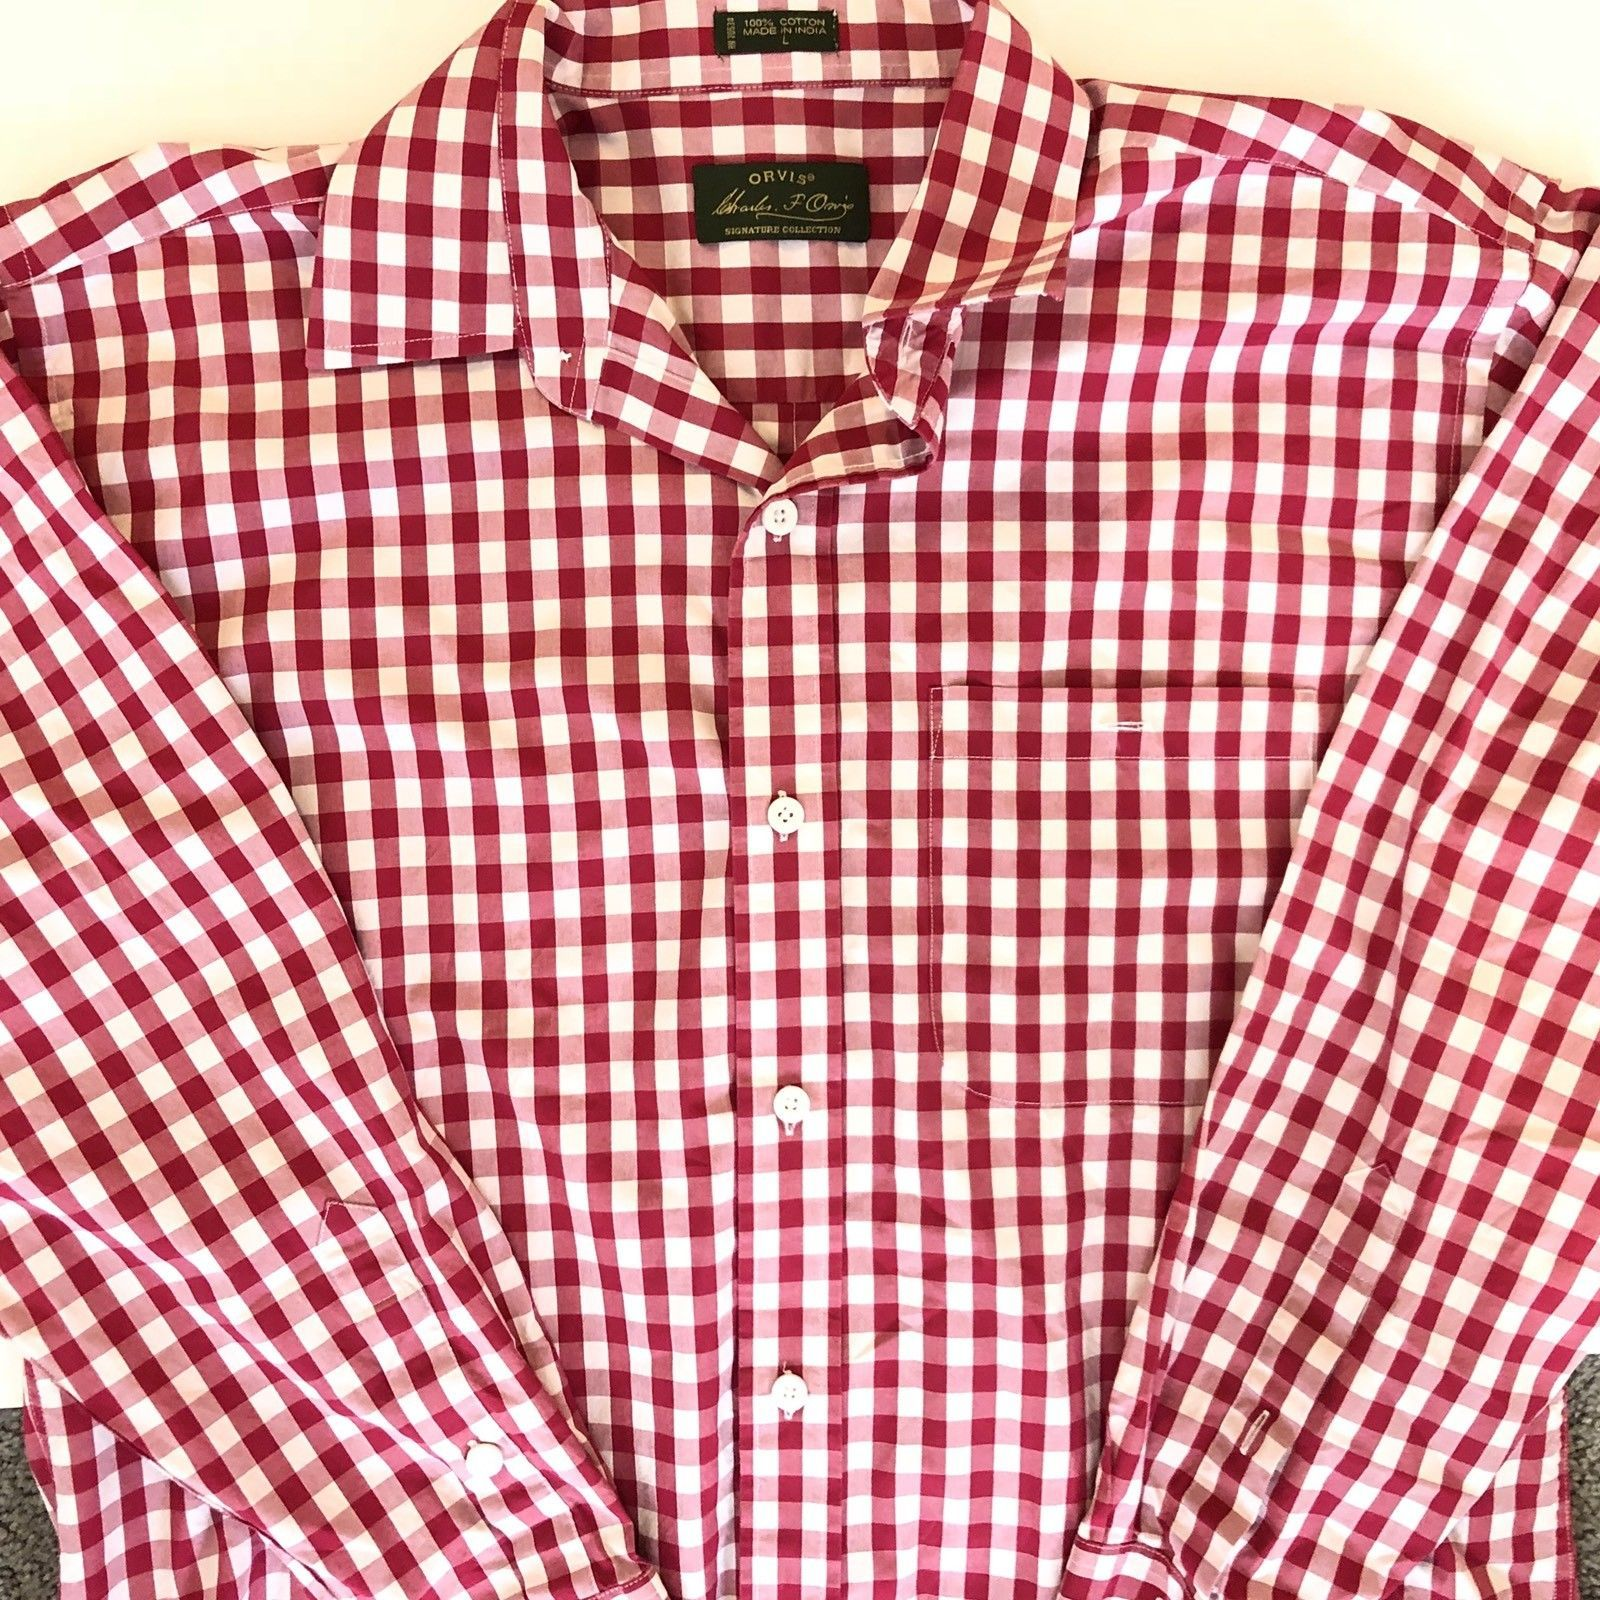 8d0bef86c73 Orvis button down Polo Shirt Collar Sporting and 11 similar items. S l1600